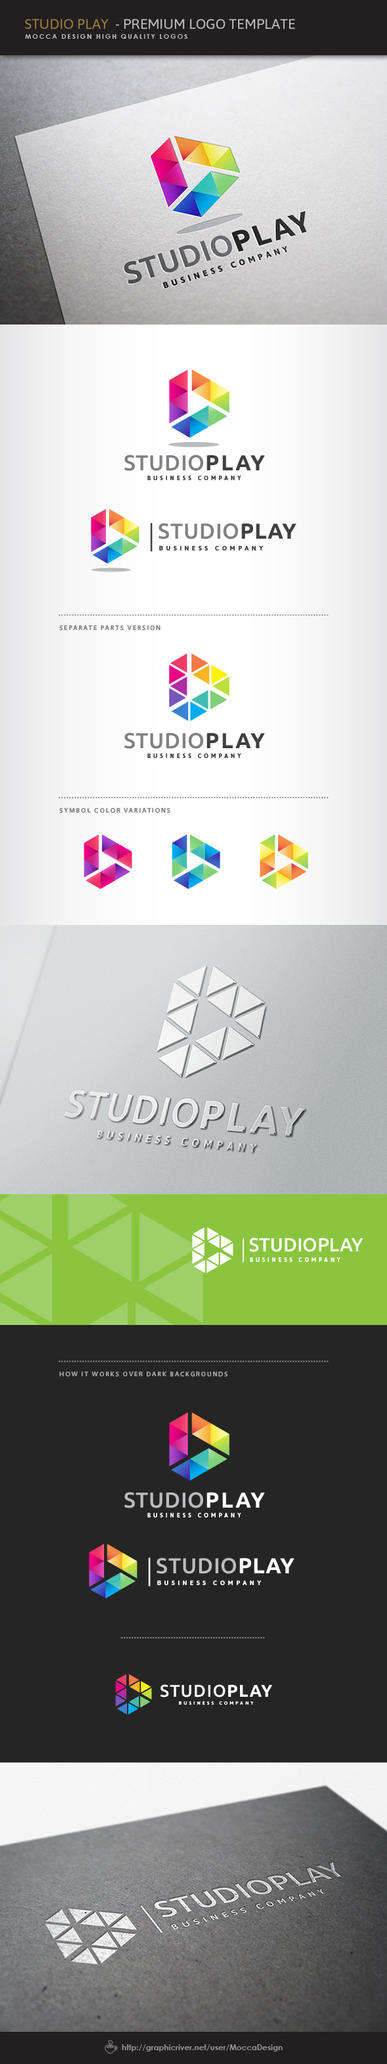 Studio Play Logo by moccadsgn